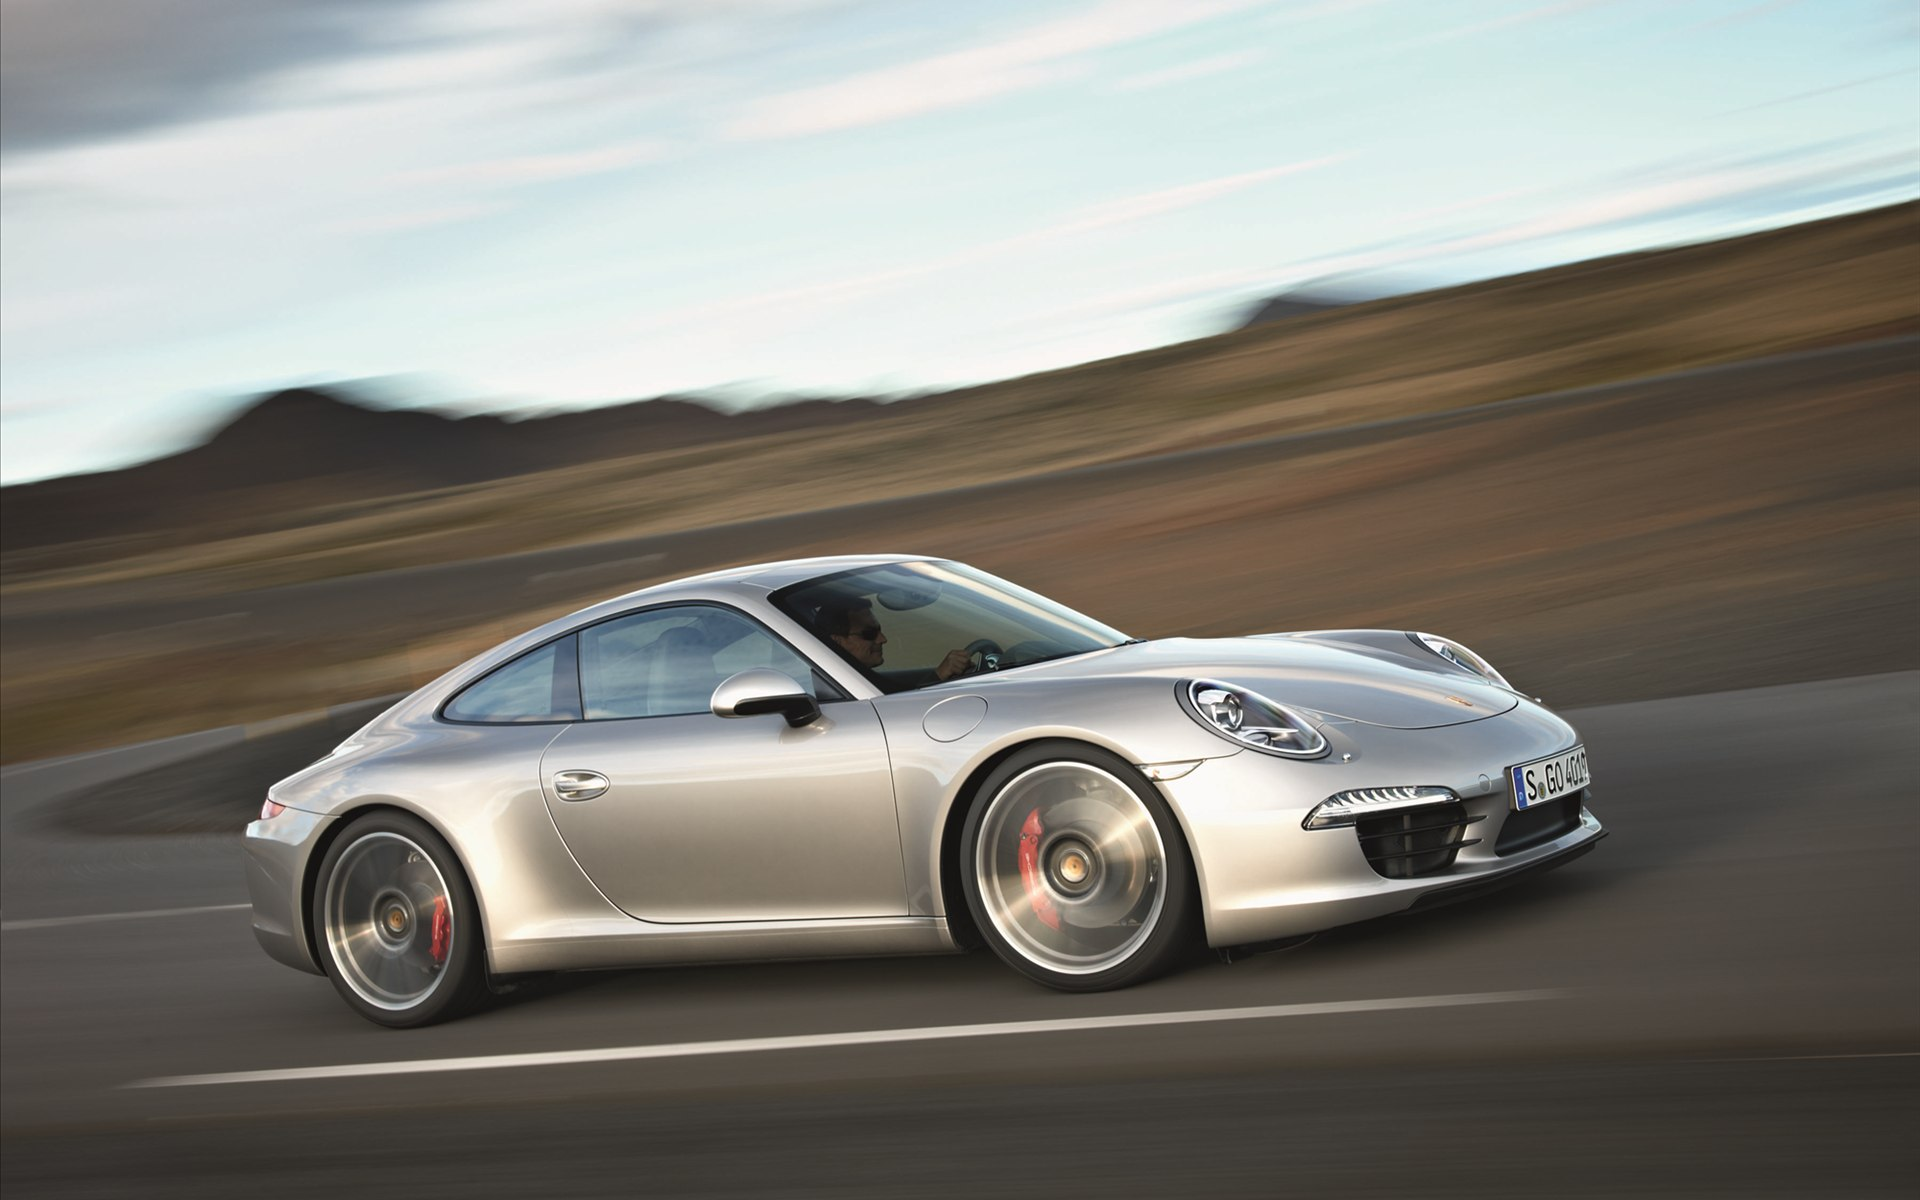 2012 Porsche 911 Carrera S Wallpaper 2 Sense The Car 1920x1200